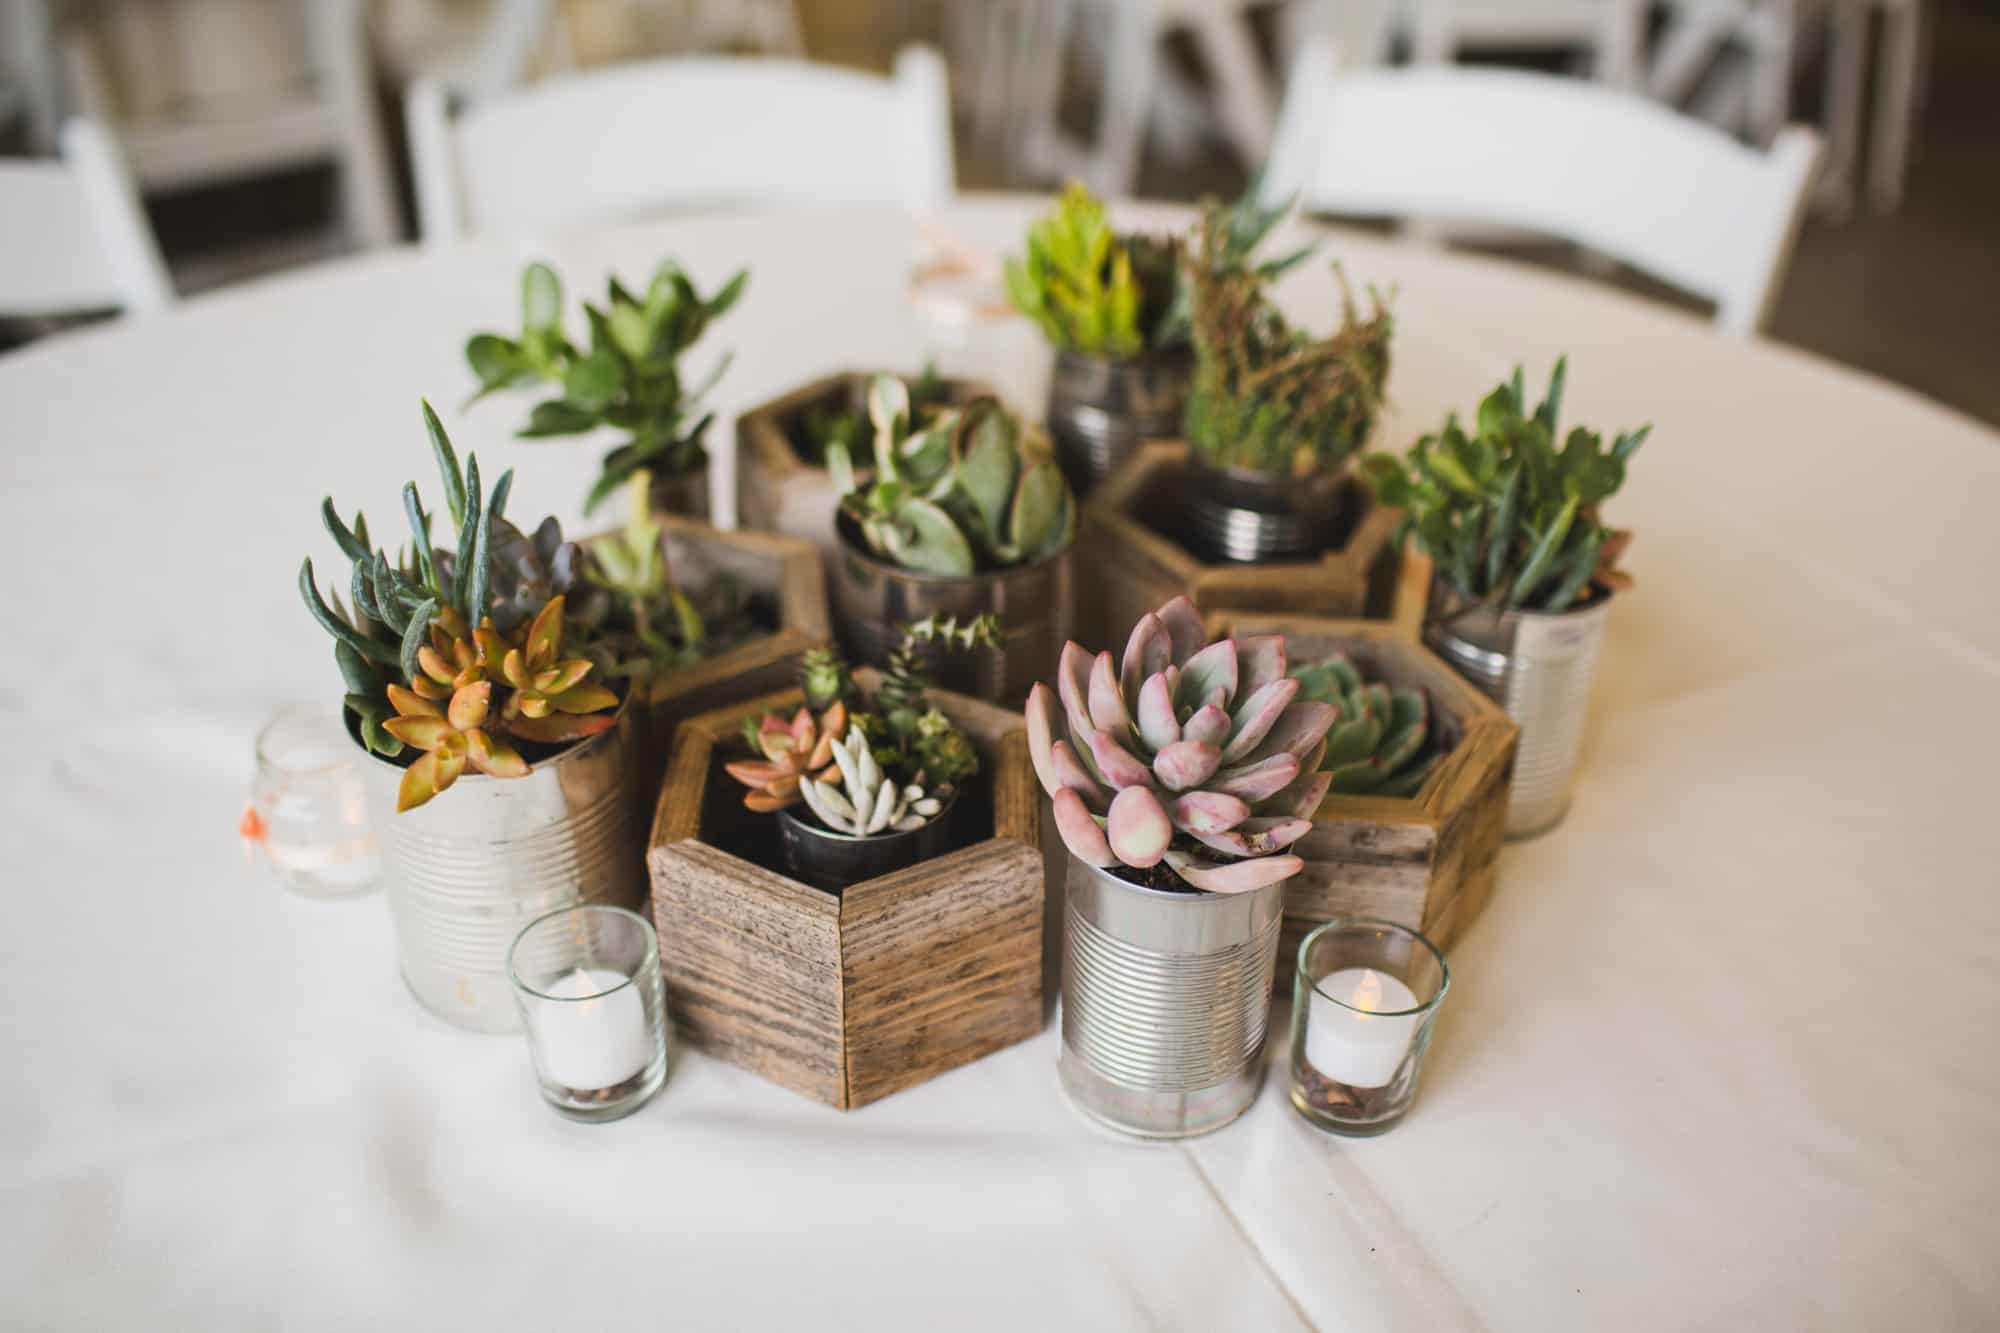 15 wedding centerpieces that you can diy diy succulents centerpieces in recycled planters solutioingenieria Image collections